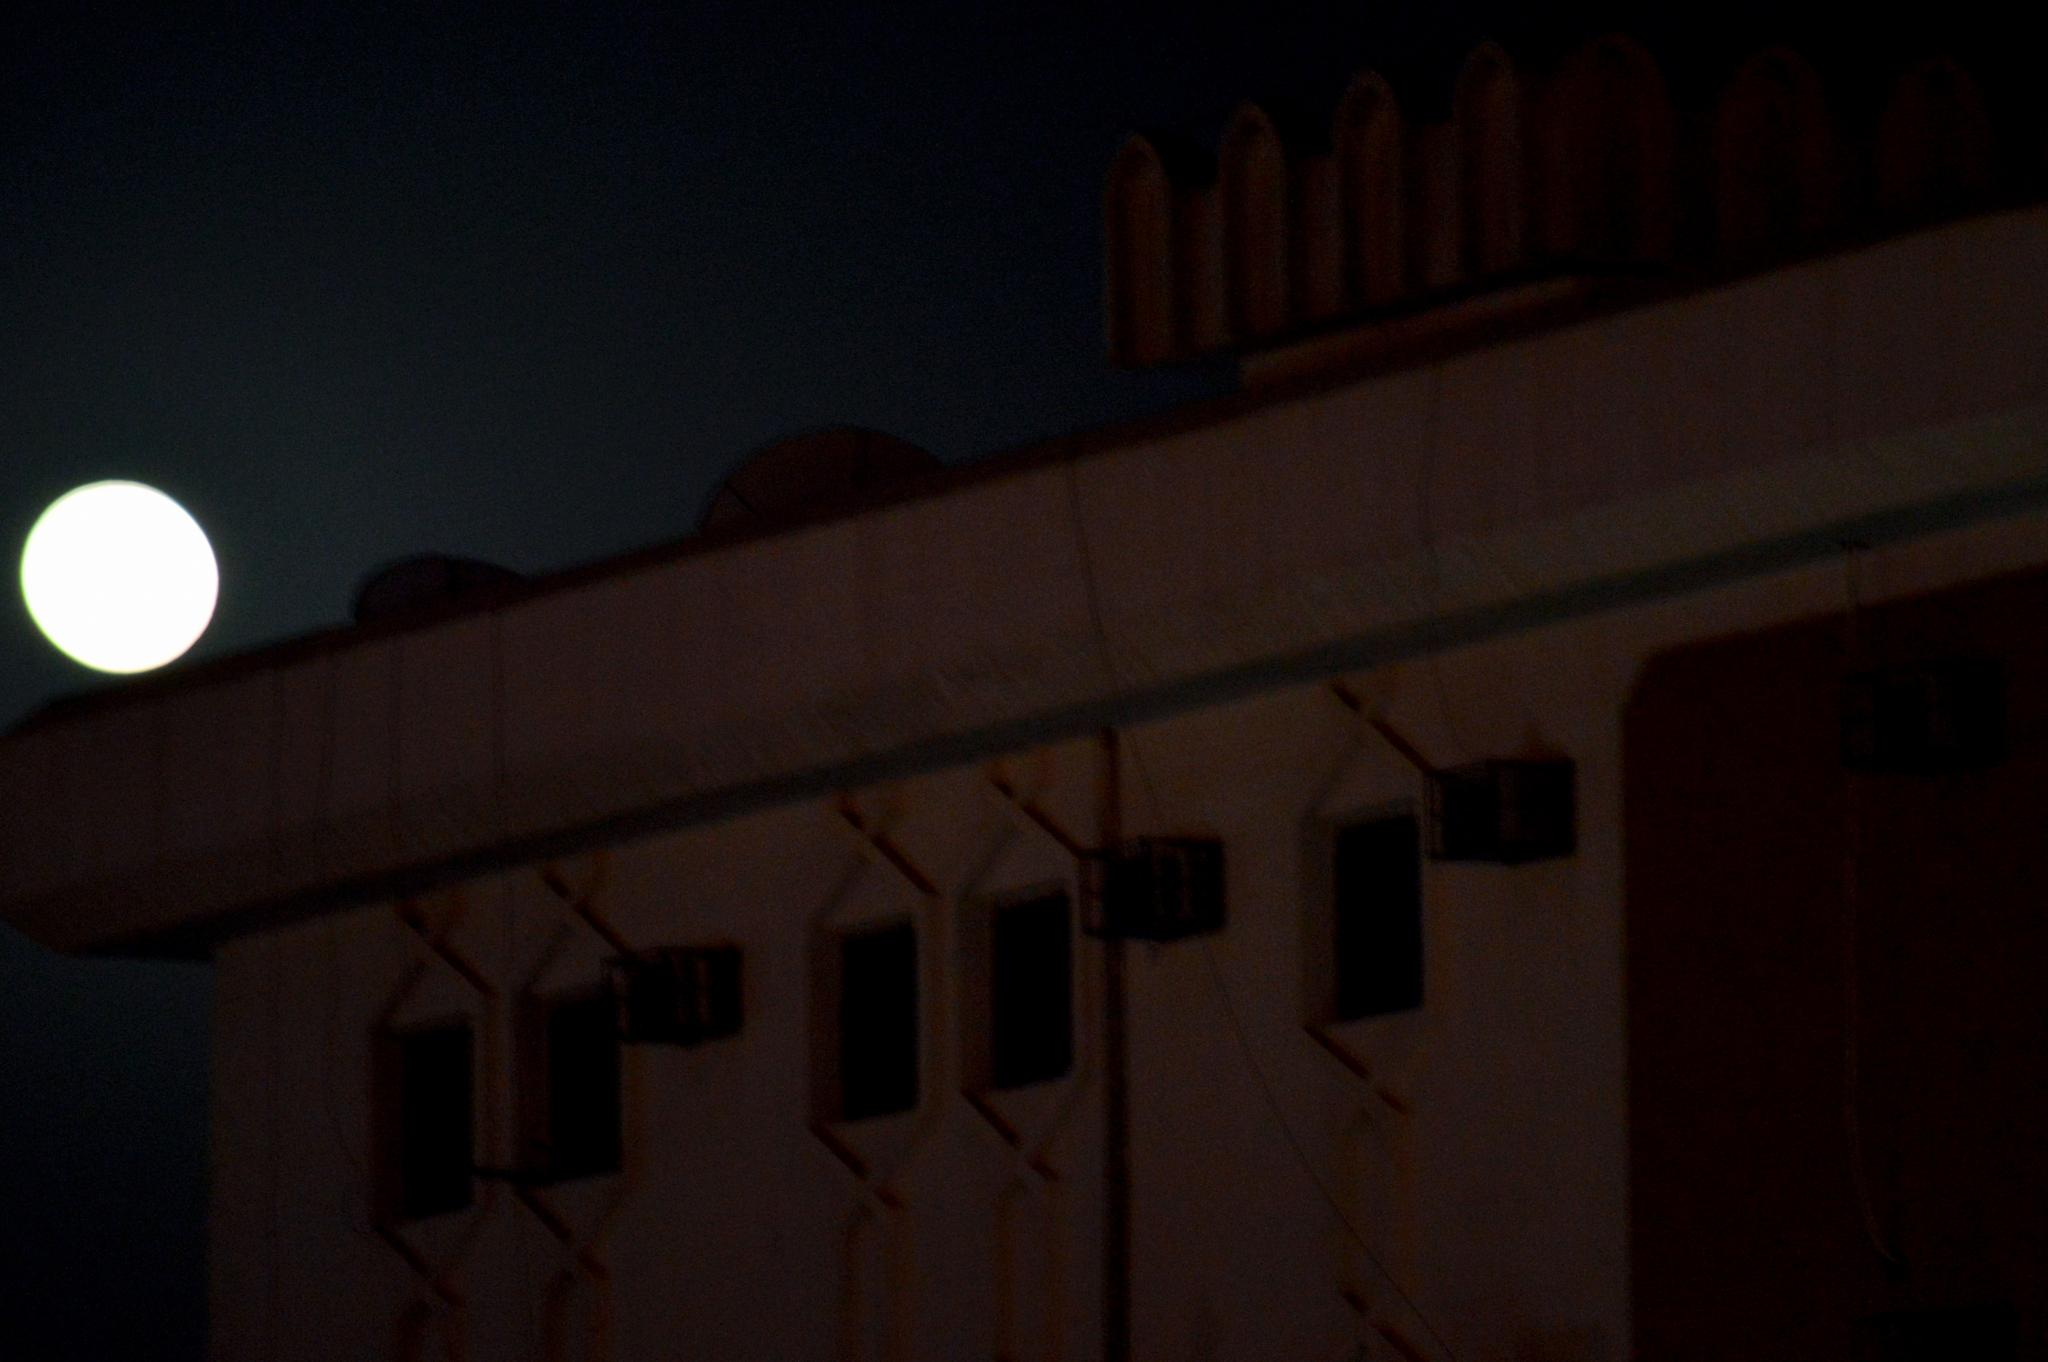 Moon on the roof by Cristo